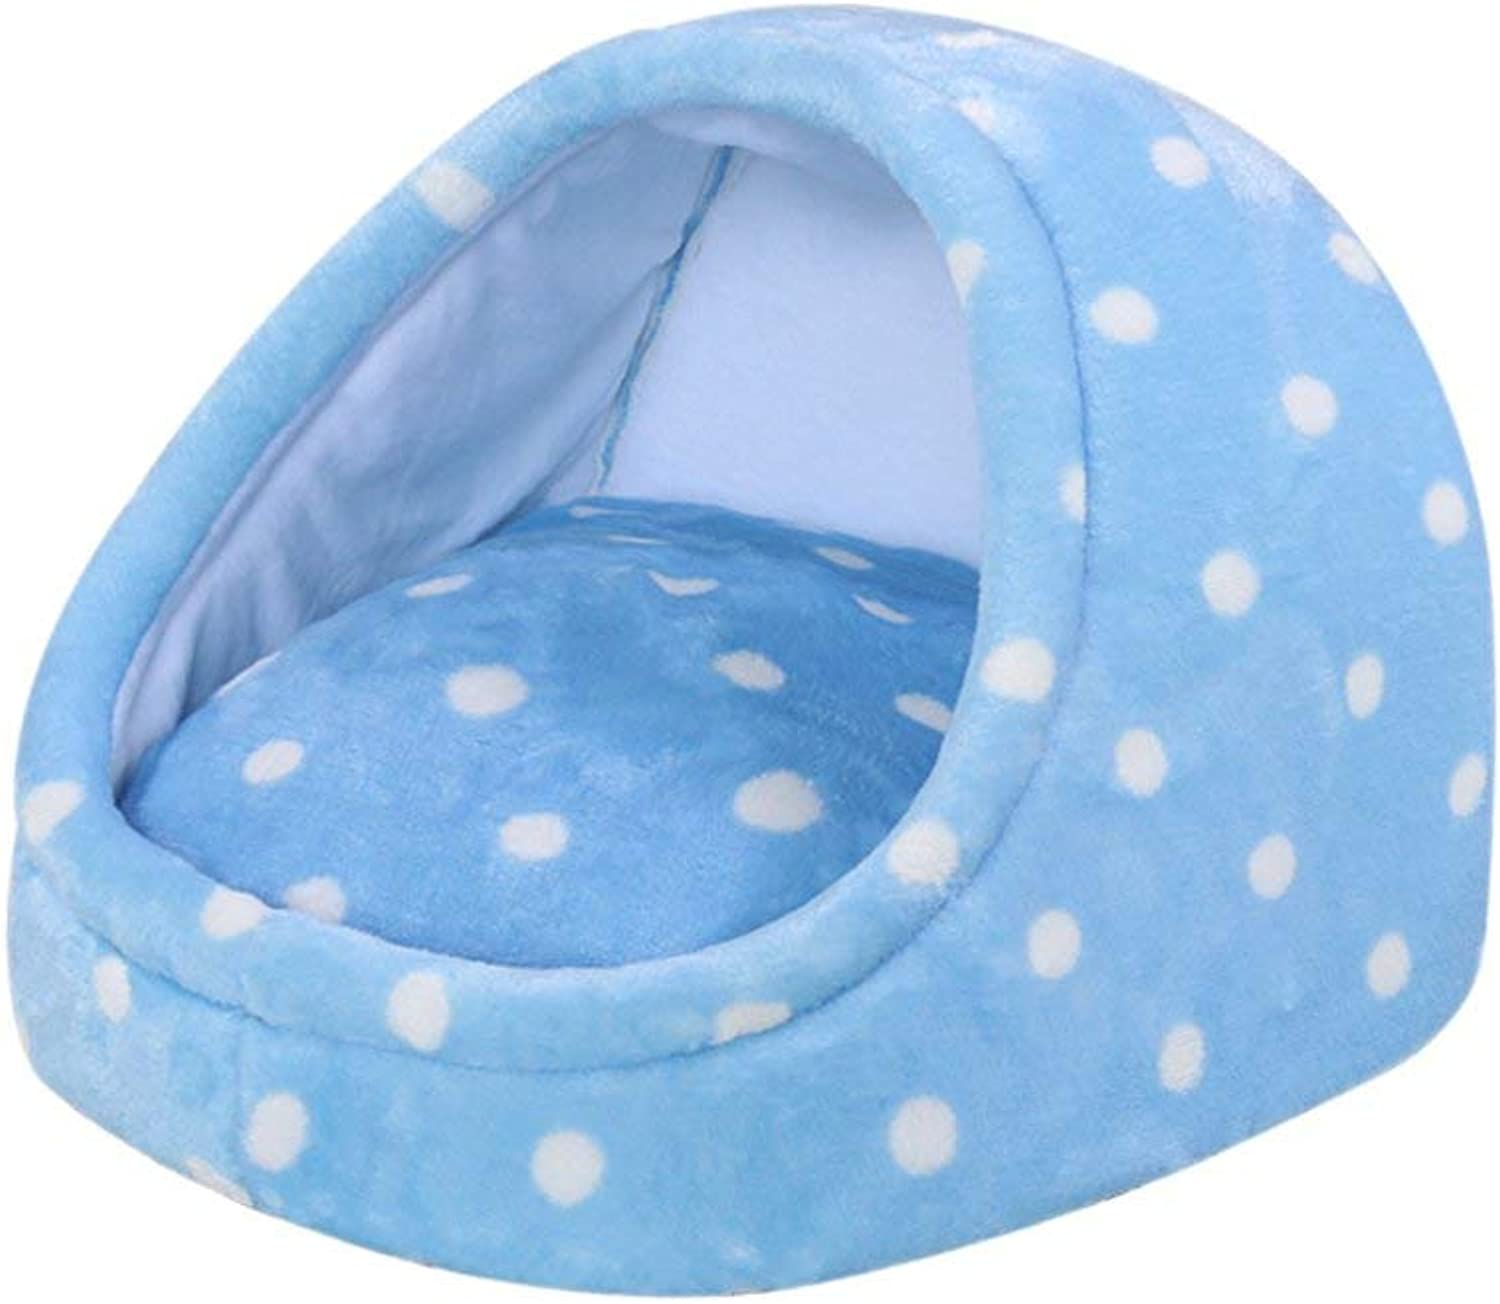 Cat and Dog Pet Nest, Suitable for Small and Medium Pets, SemiClosed Pet Nest, Teddy golden Mao Samoyed Universal Pet Bed (color   bluee, Size   46  46  35CM)